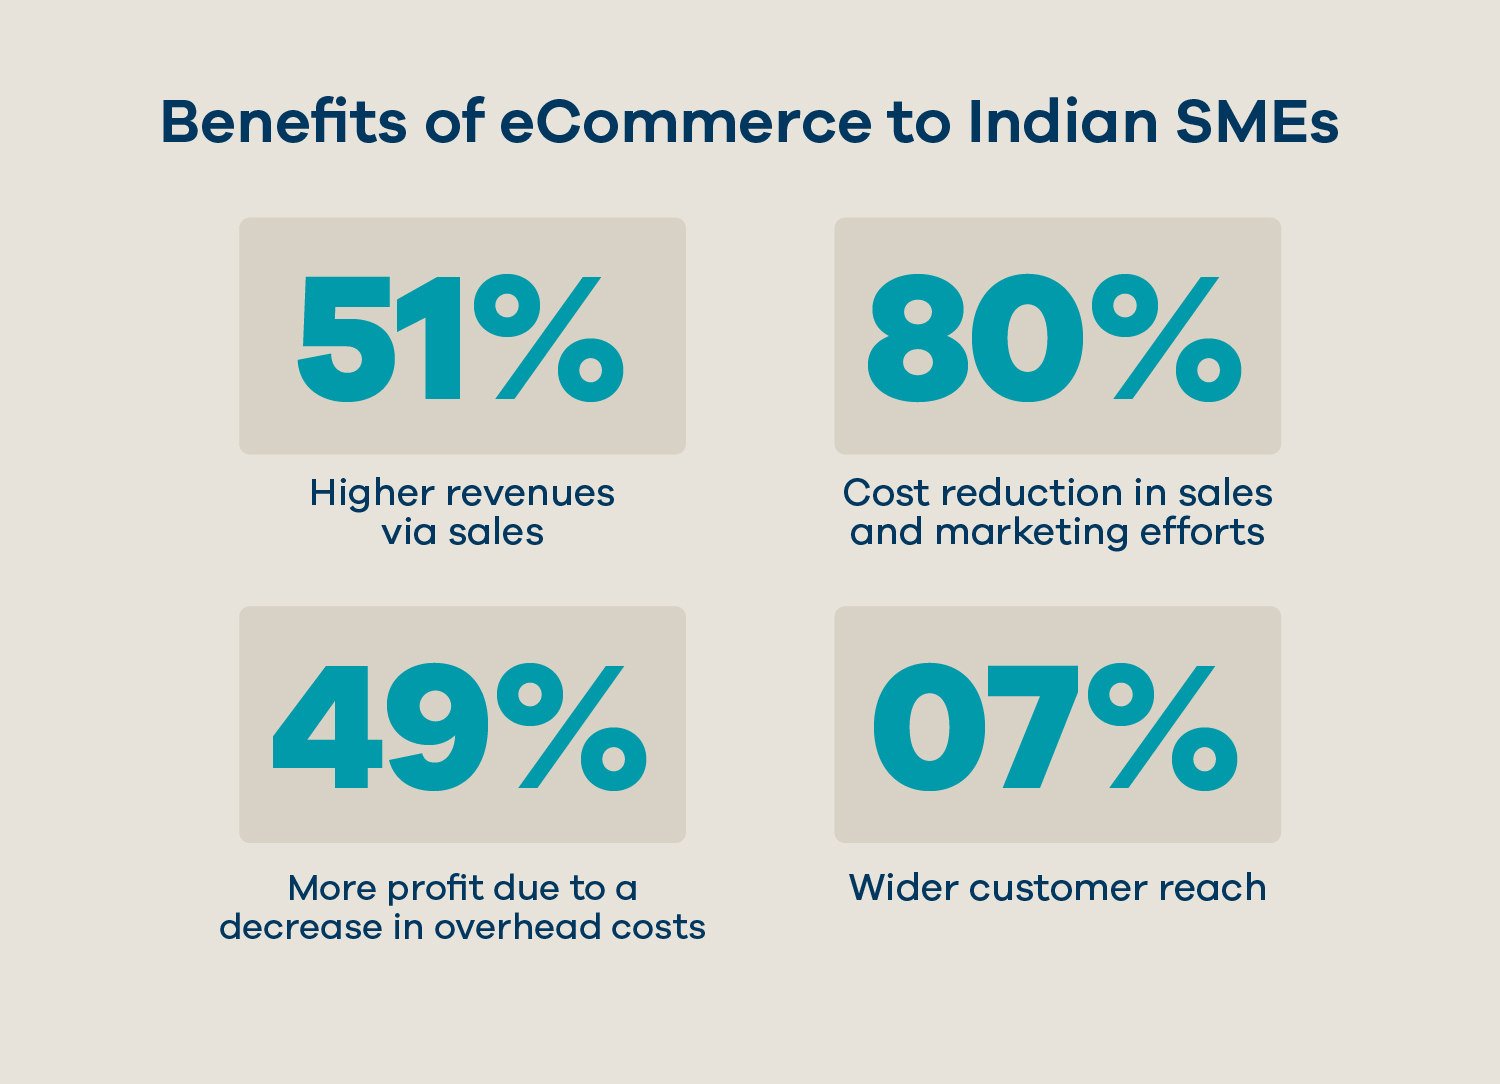 benefits of eCommerce to Indian SMEs